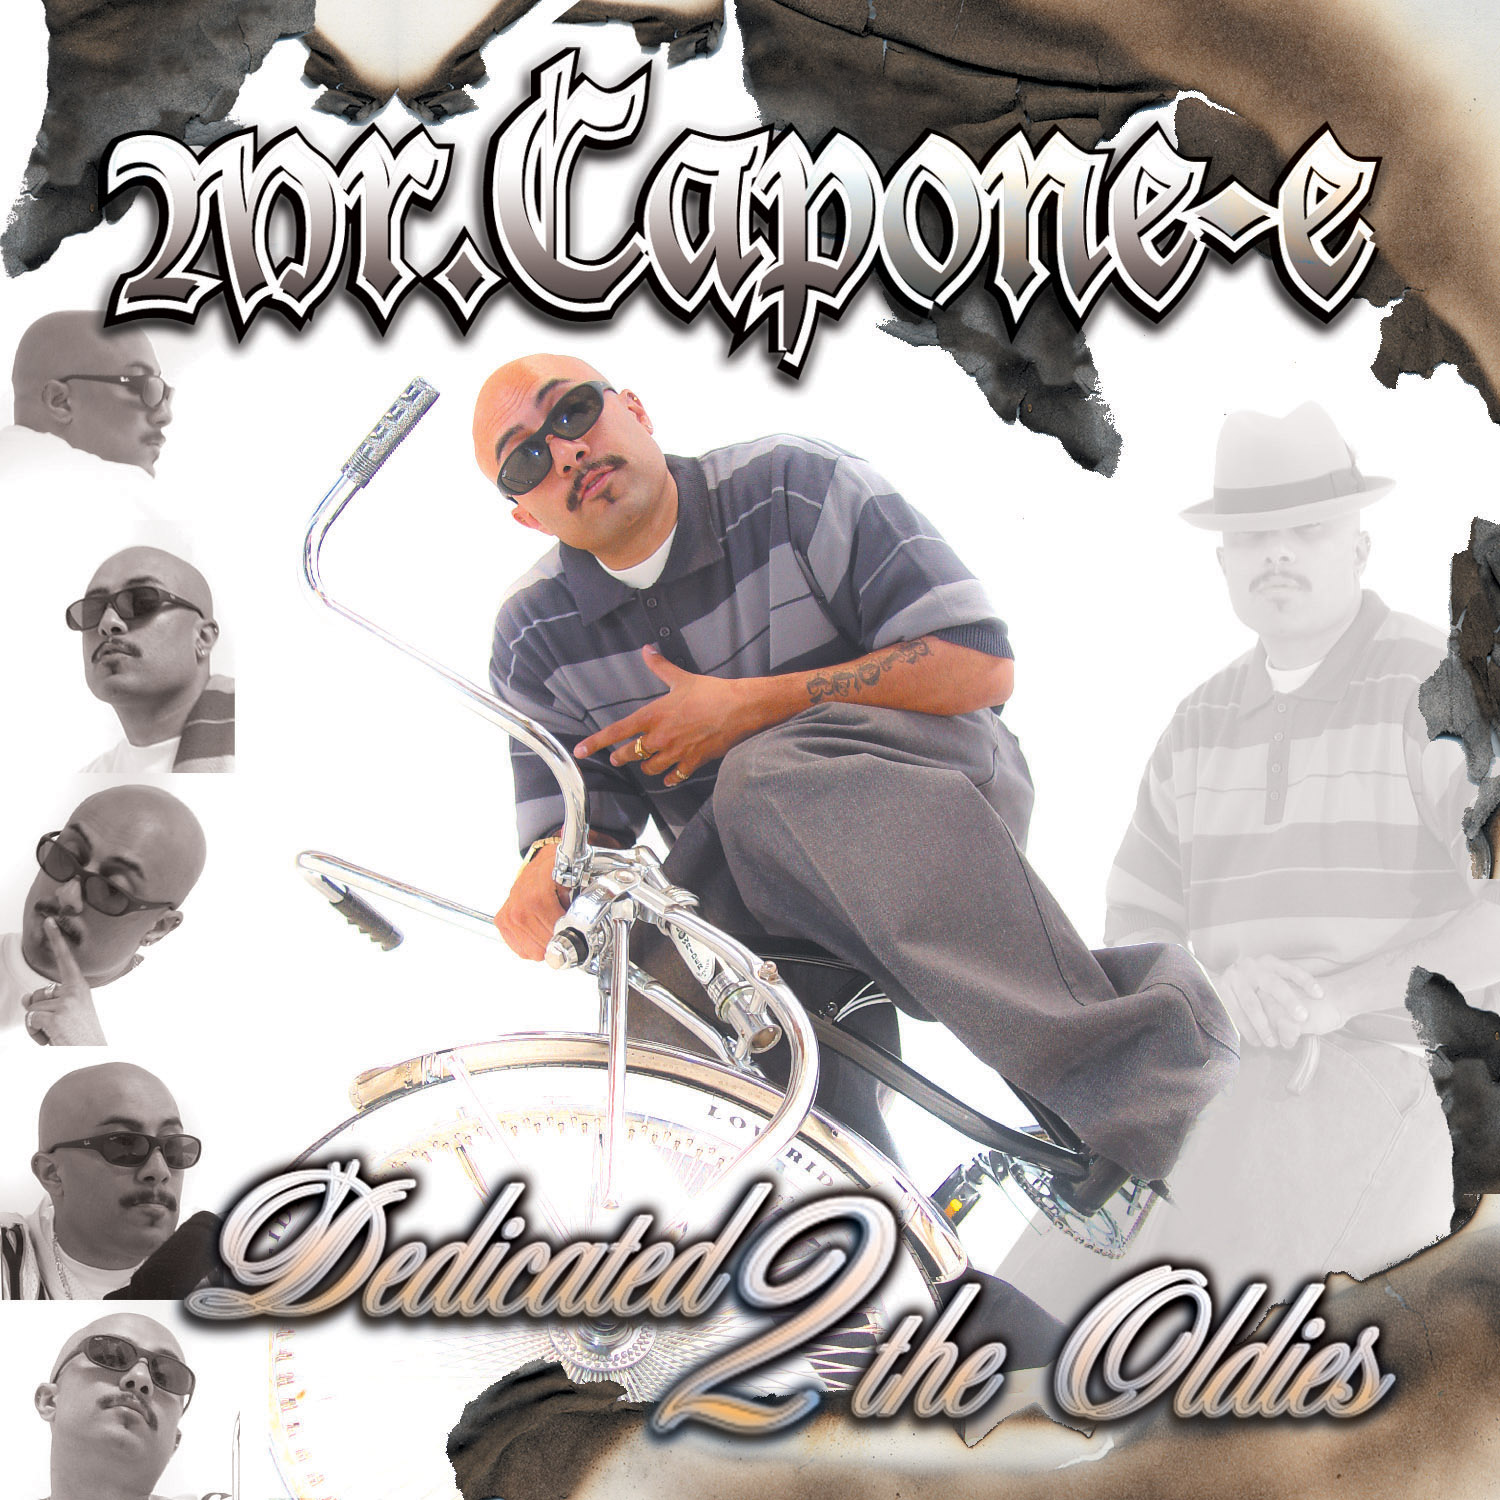 Mr capone e dedicated 2 the oldies